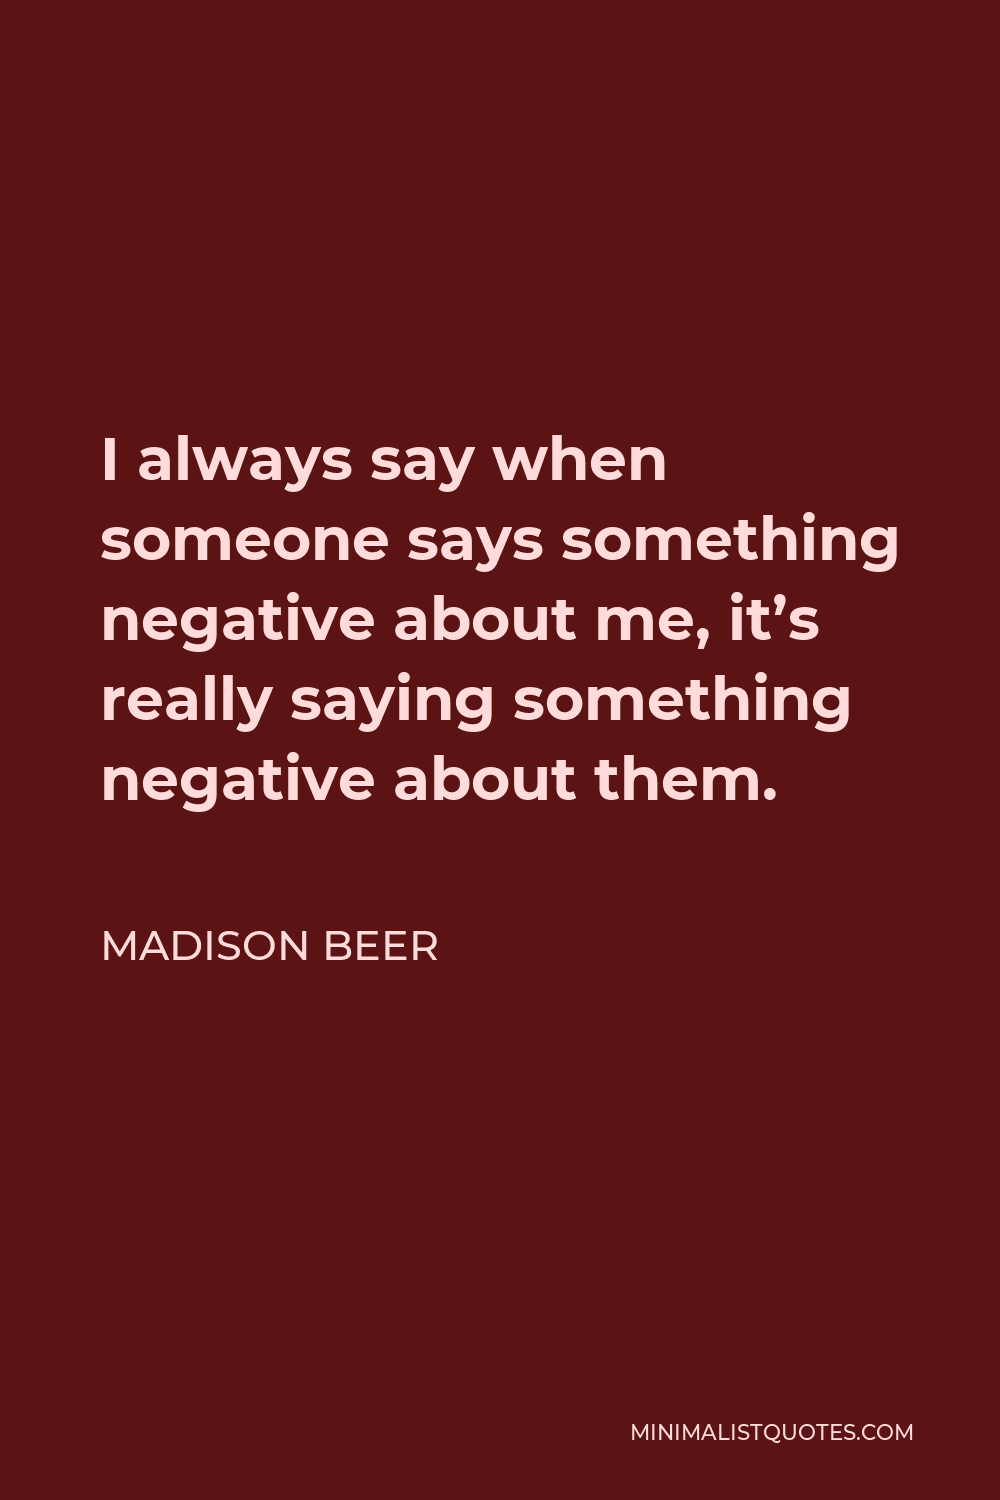 Madison Beer Quote - I always say when someone says something negative about me, it's really saying something negative about them.